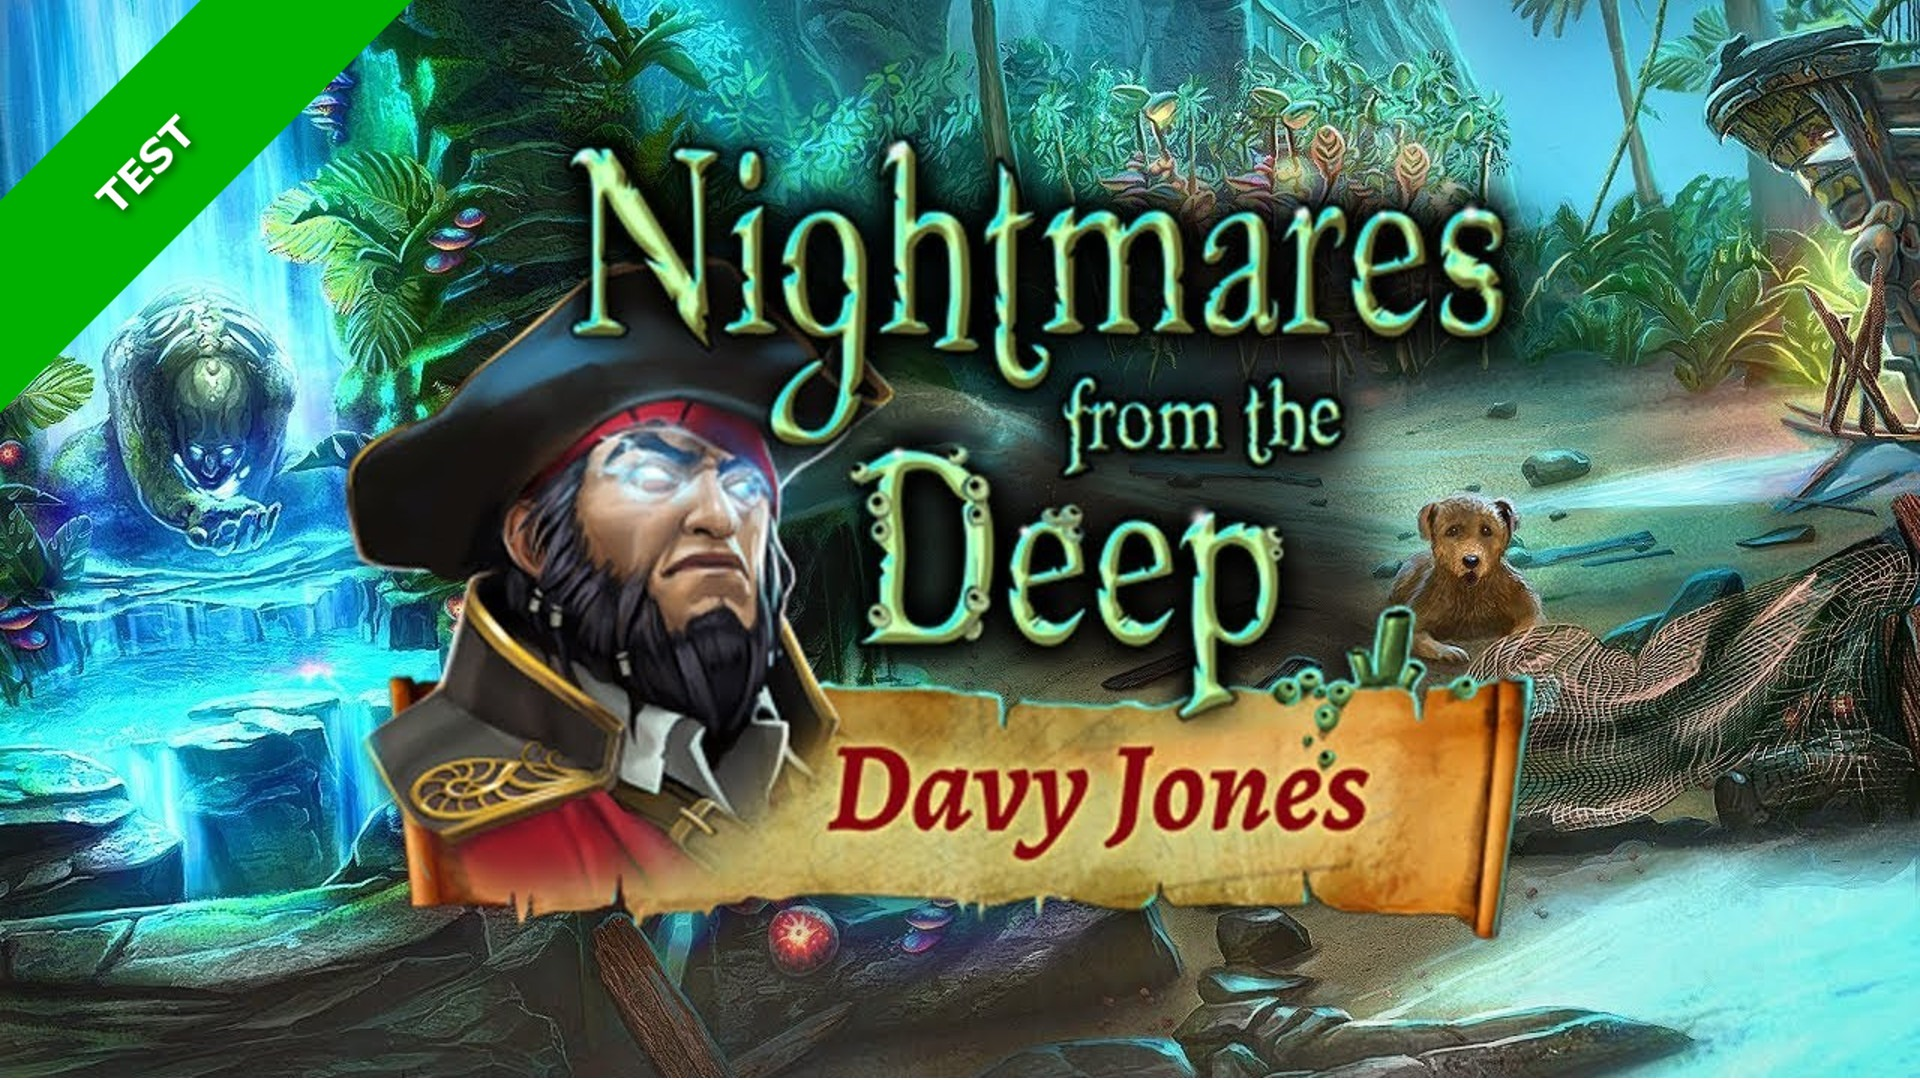 Nightmares from the Deep 3 : Davy Jones